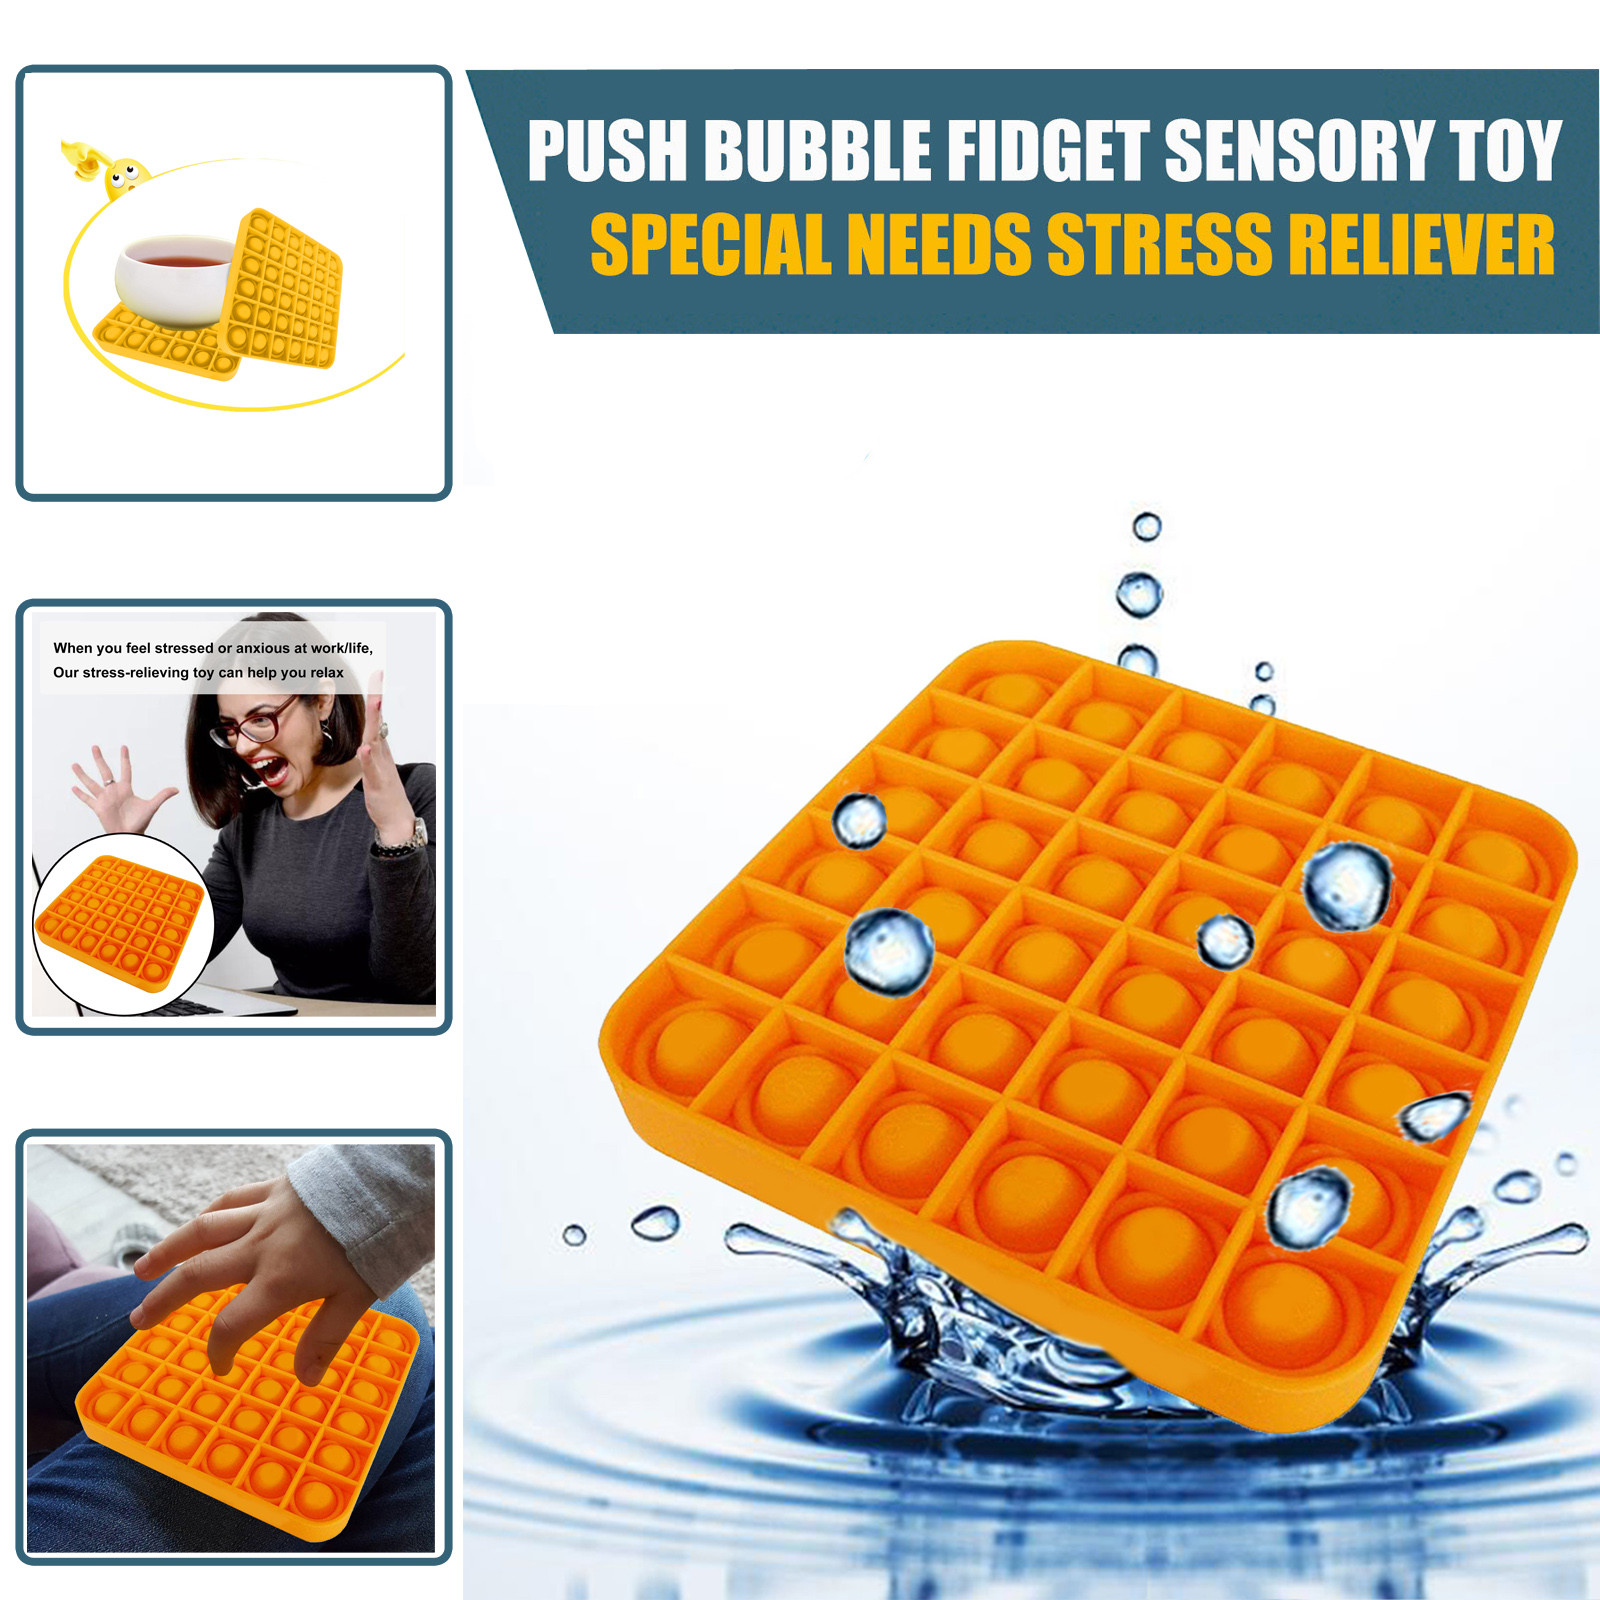 Bubble-Sensory-Toy Fidget-Toys Autism Adhd Popit-Stress Special Needs Squishy Reliever img5